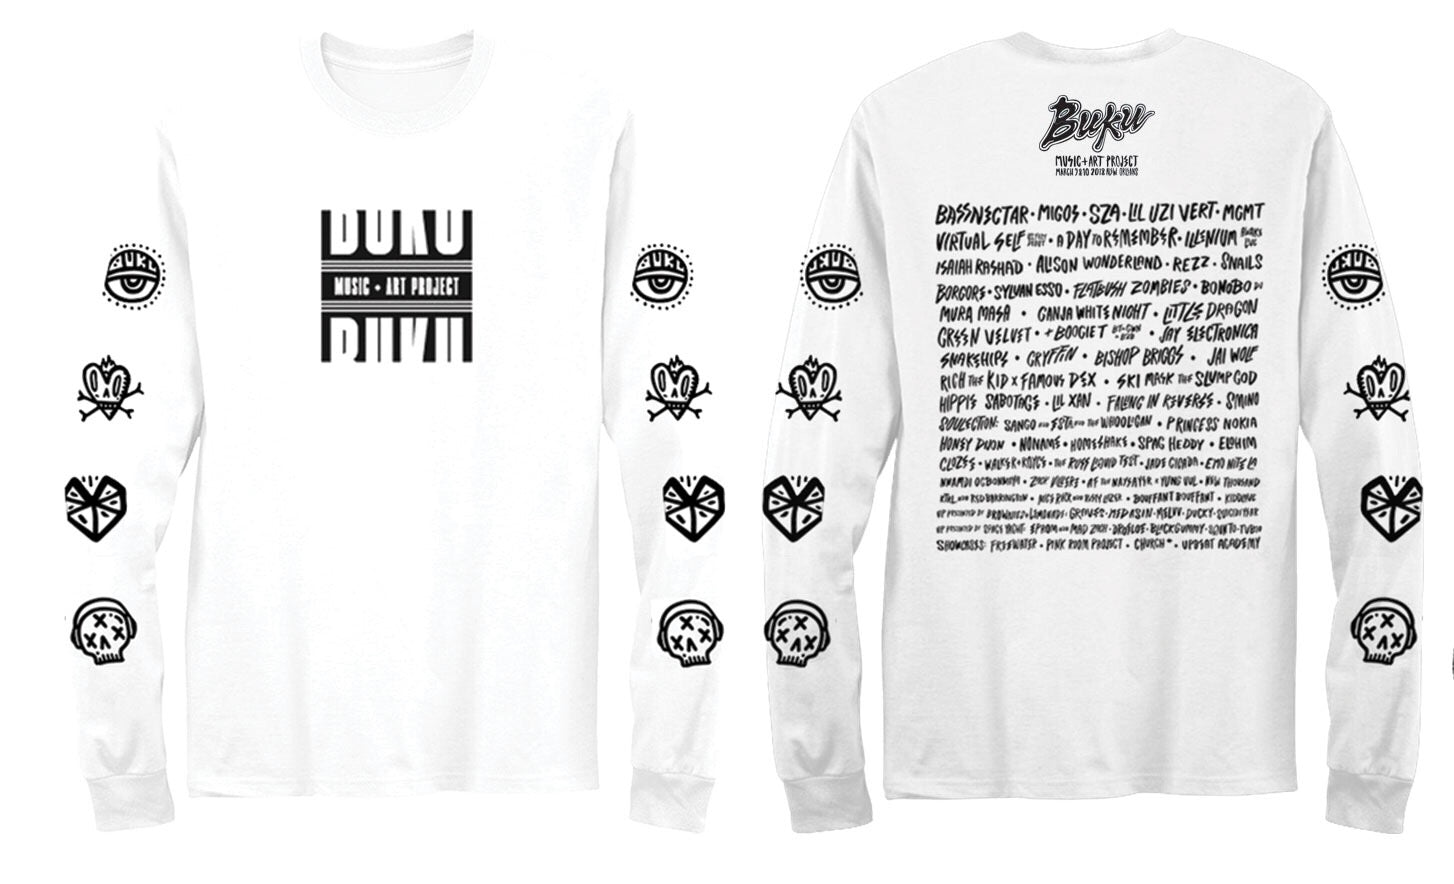 BUKU Lineup Long Sleeve